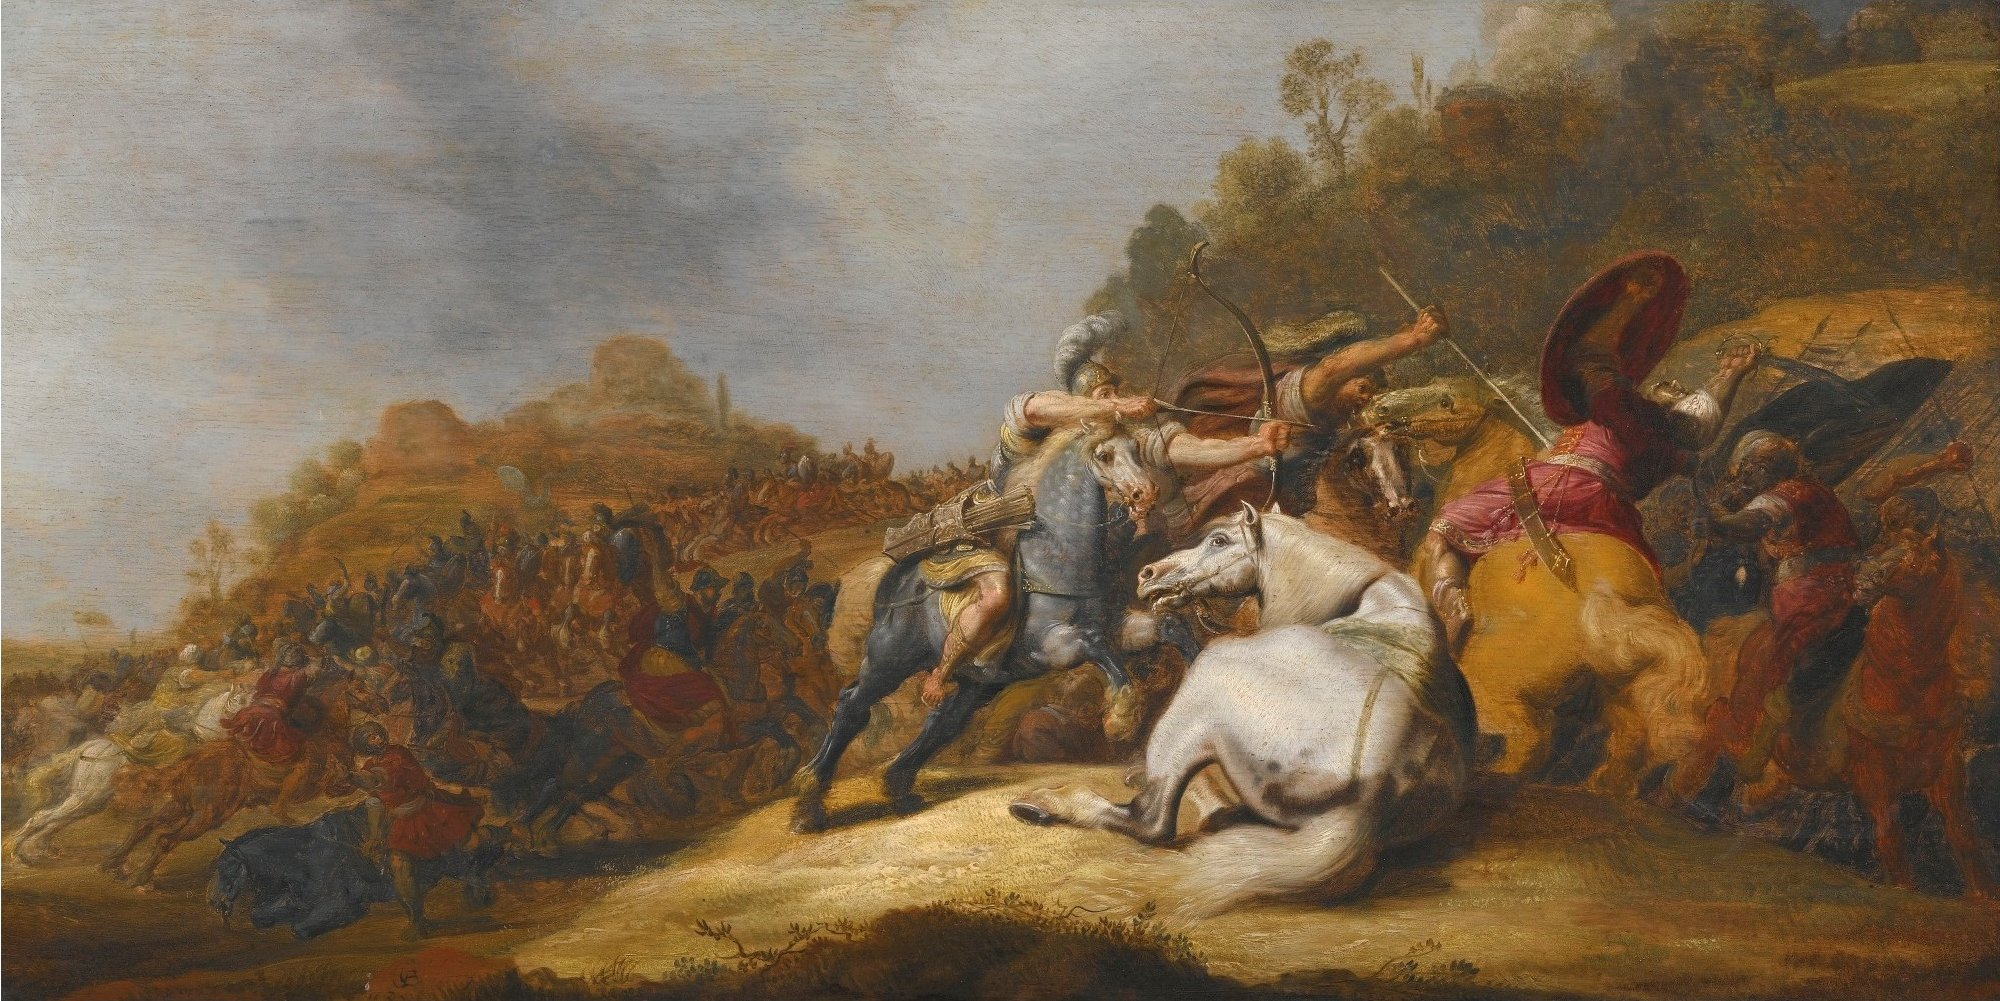 Battle on Horseback with Armored Soldiers  Soldiers Wearing Turbans by Gerrit Claesz. Bleker